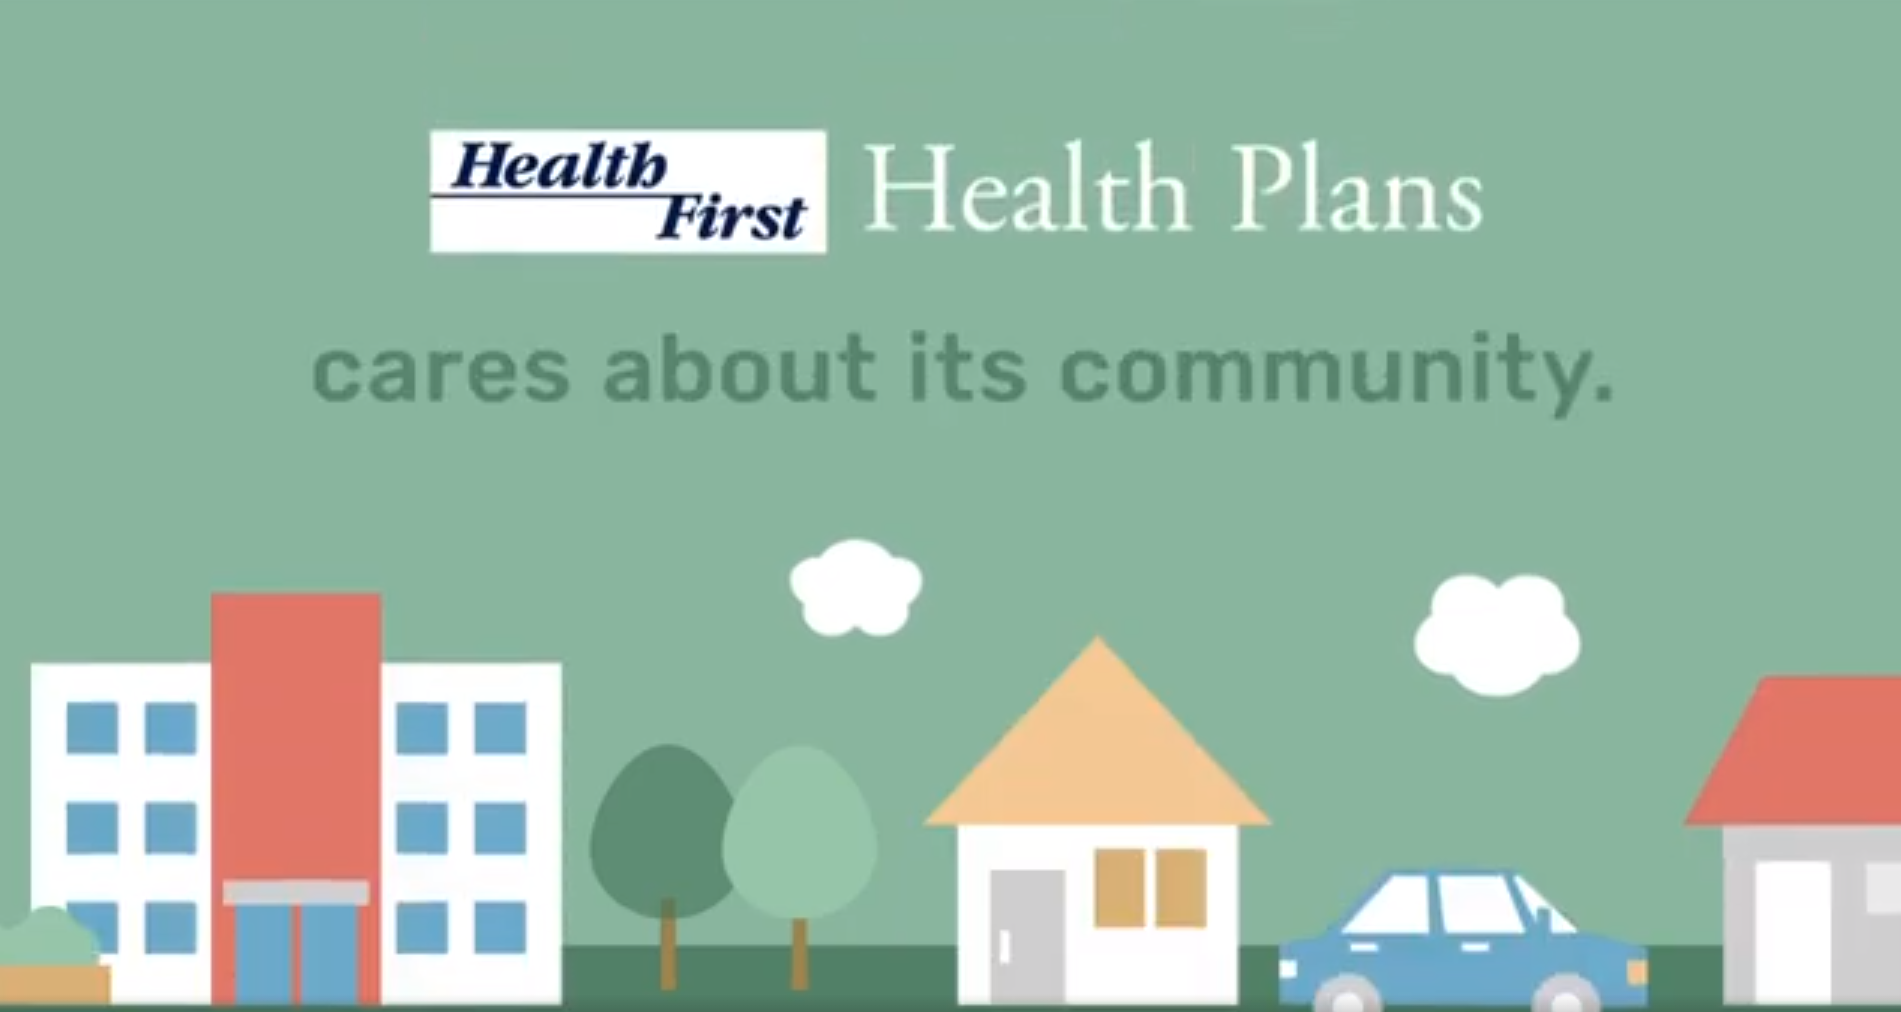 Image of a neighborhood with Health First Health Plans logo and message